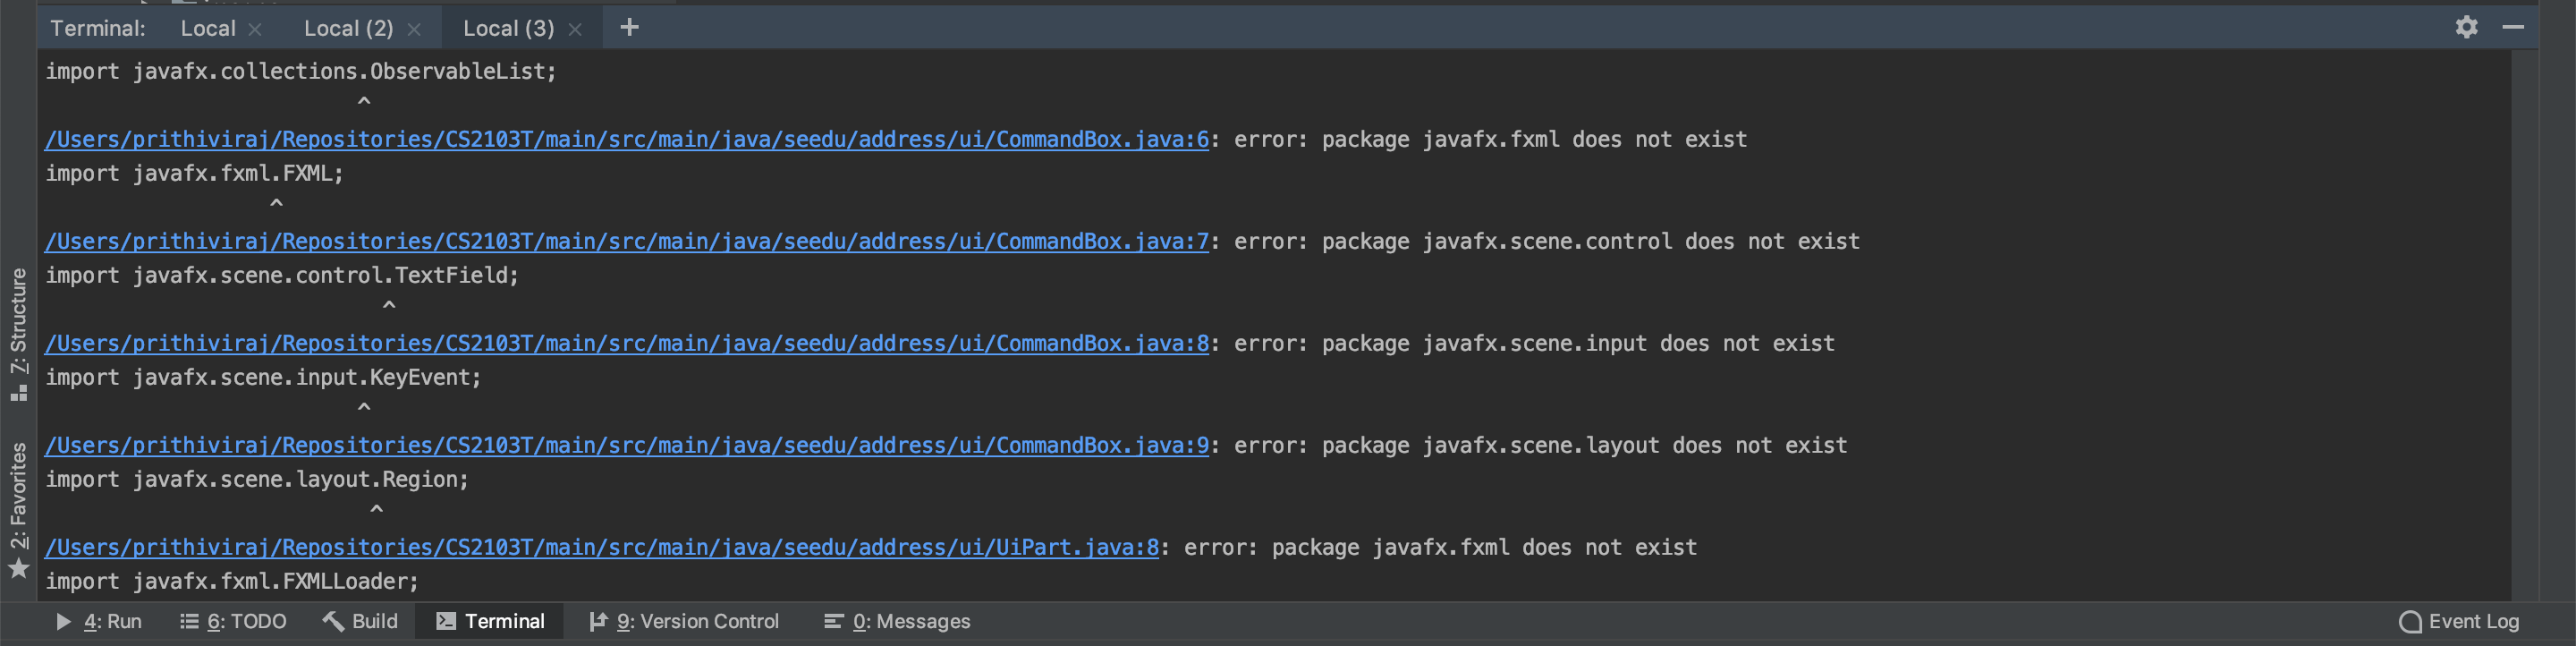 Gradle shadowJar cannot resolve JavaFX Packages  · Issue #70 · nus